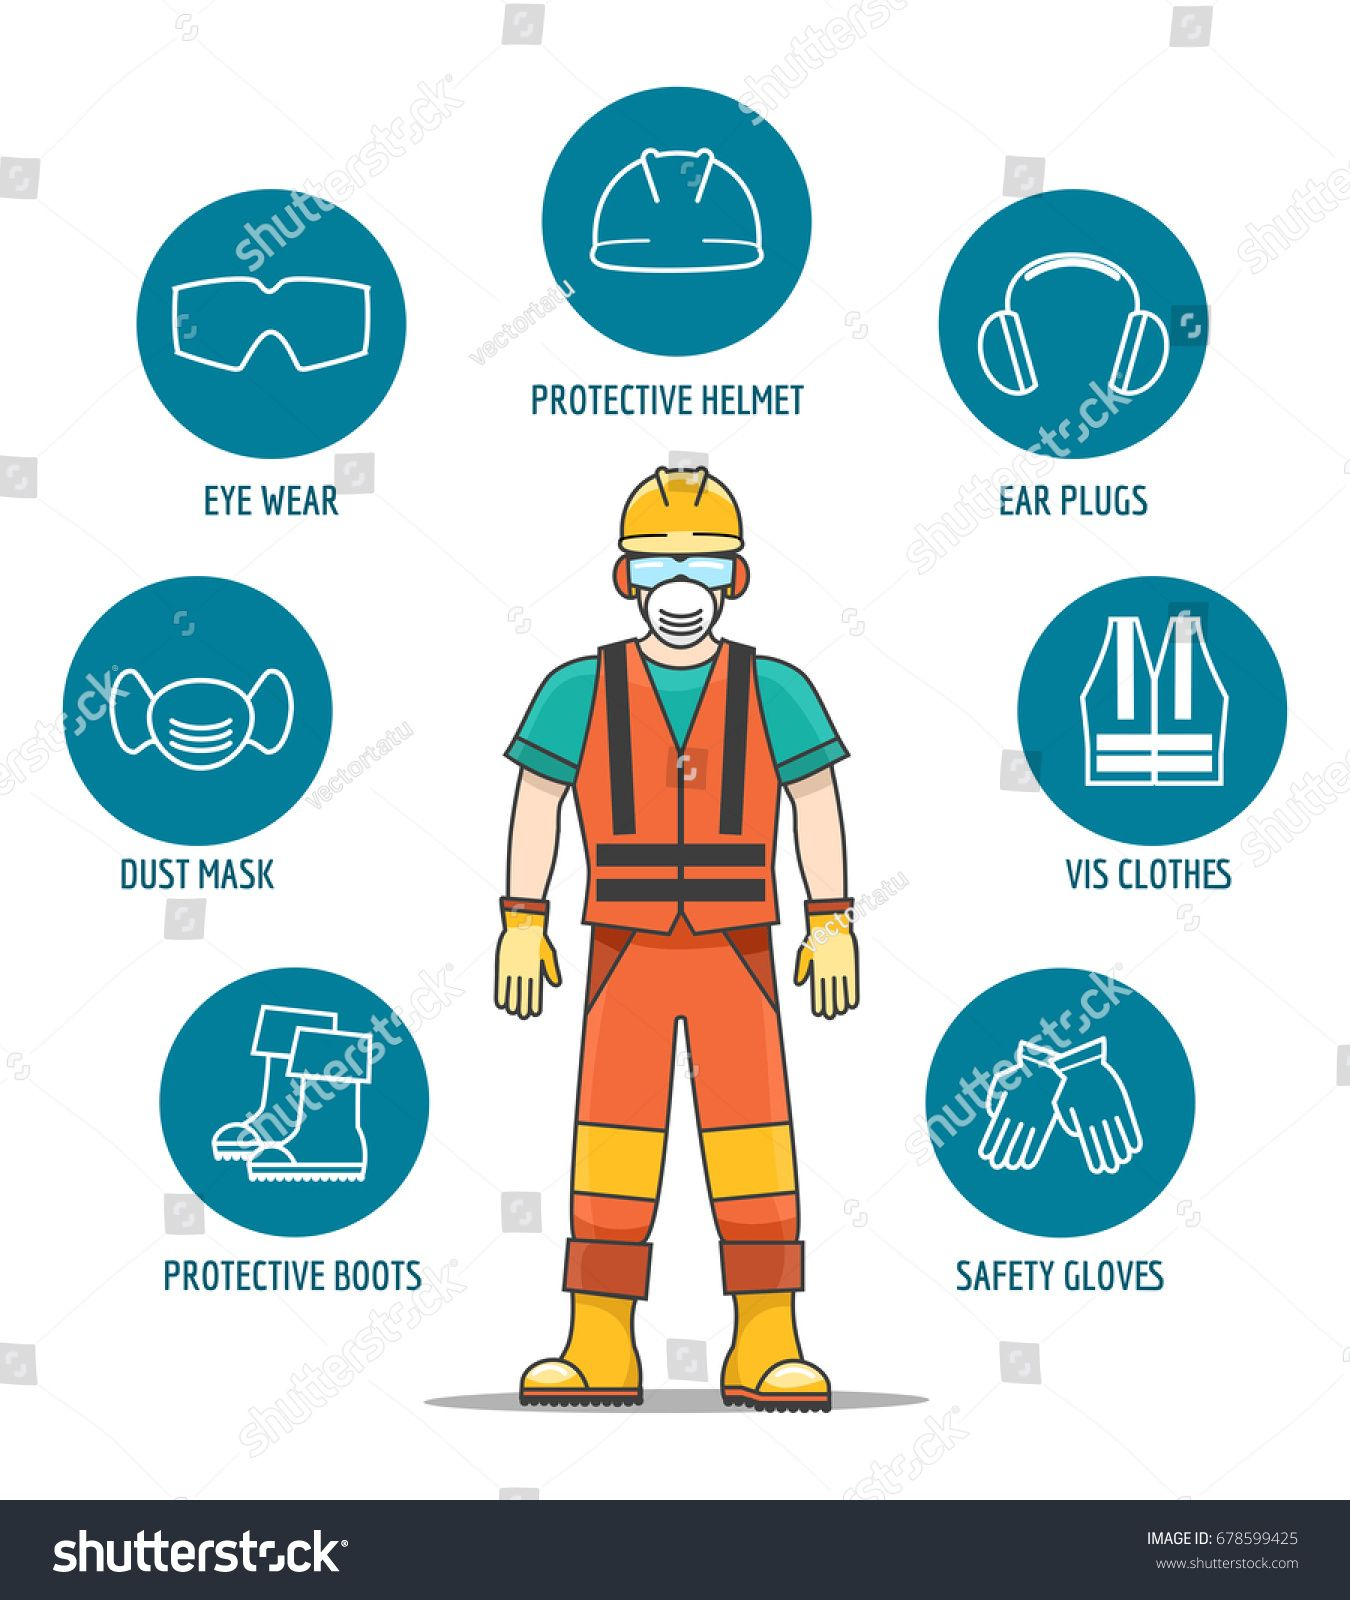 Protective and Safety Equipment or ppe vector illustration